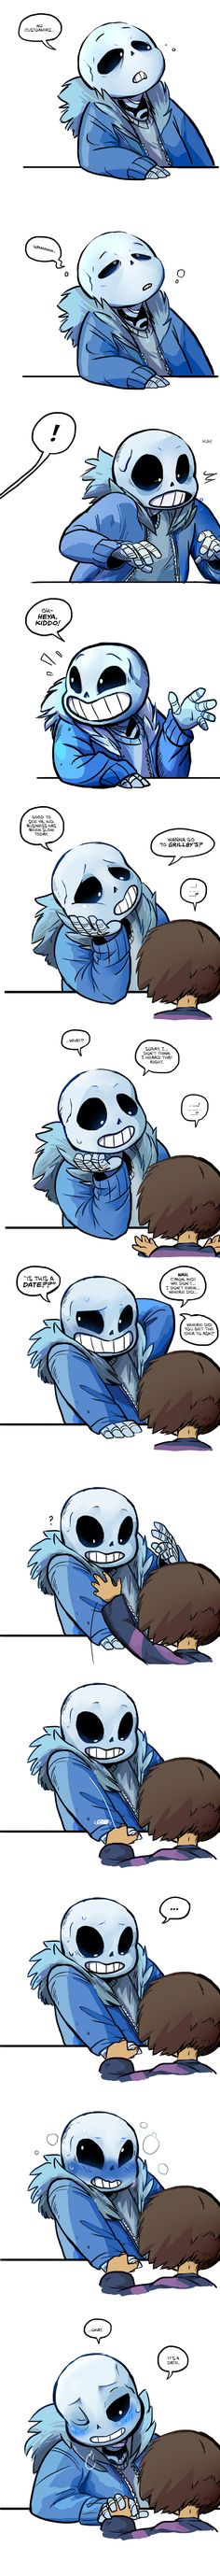 Lunch Break (Undertale) by AutopsyJuice on DeviantArt